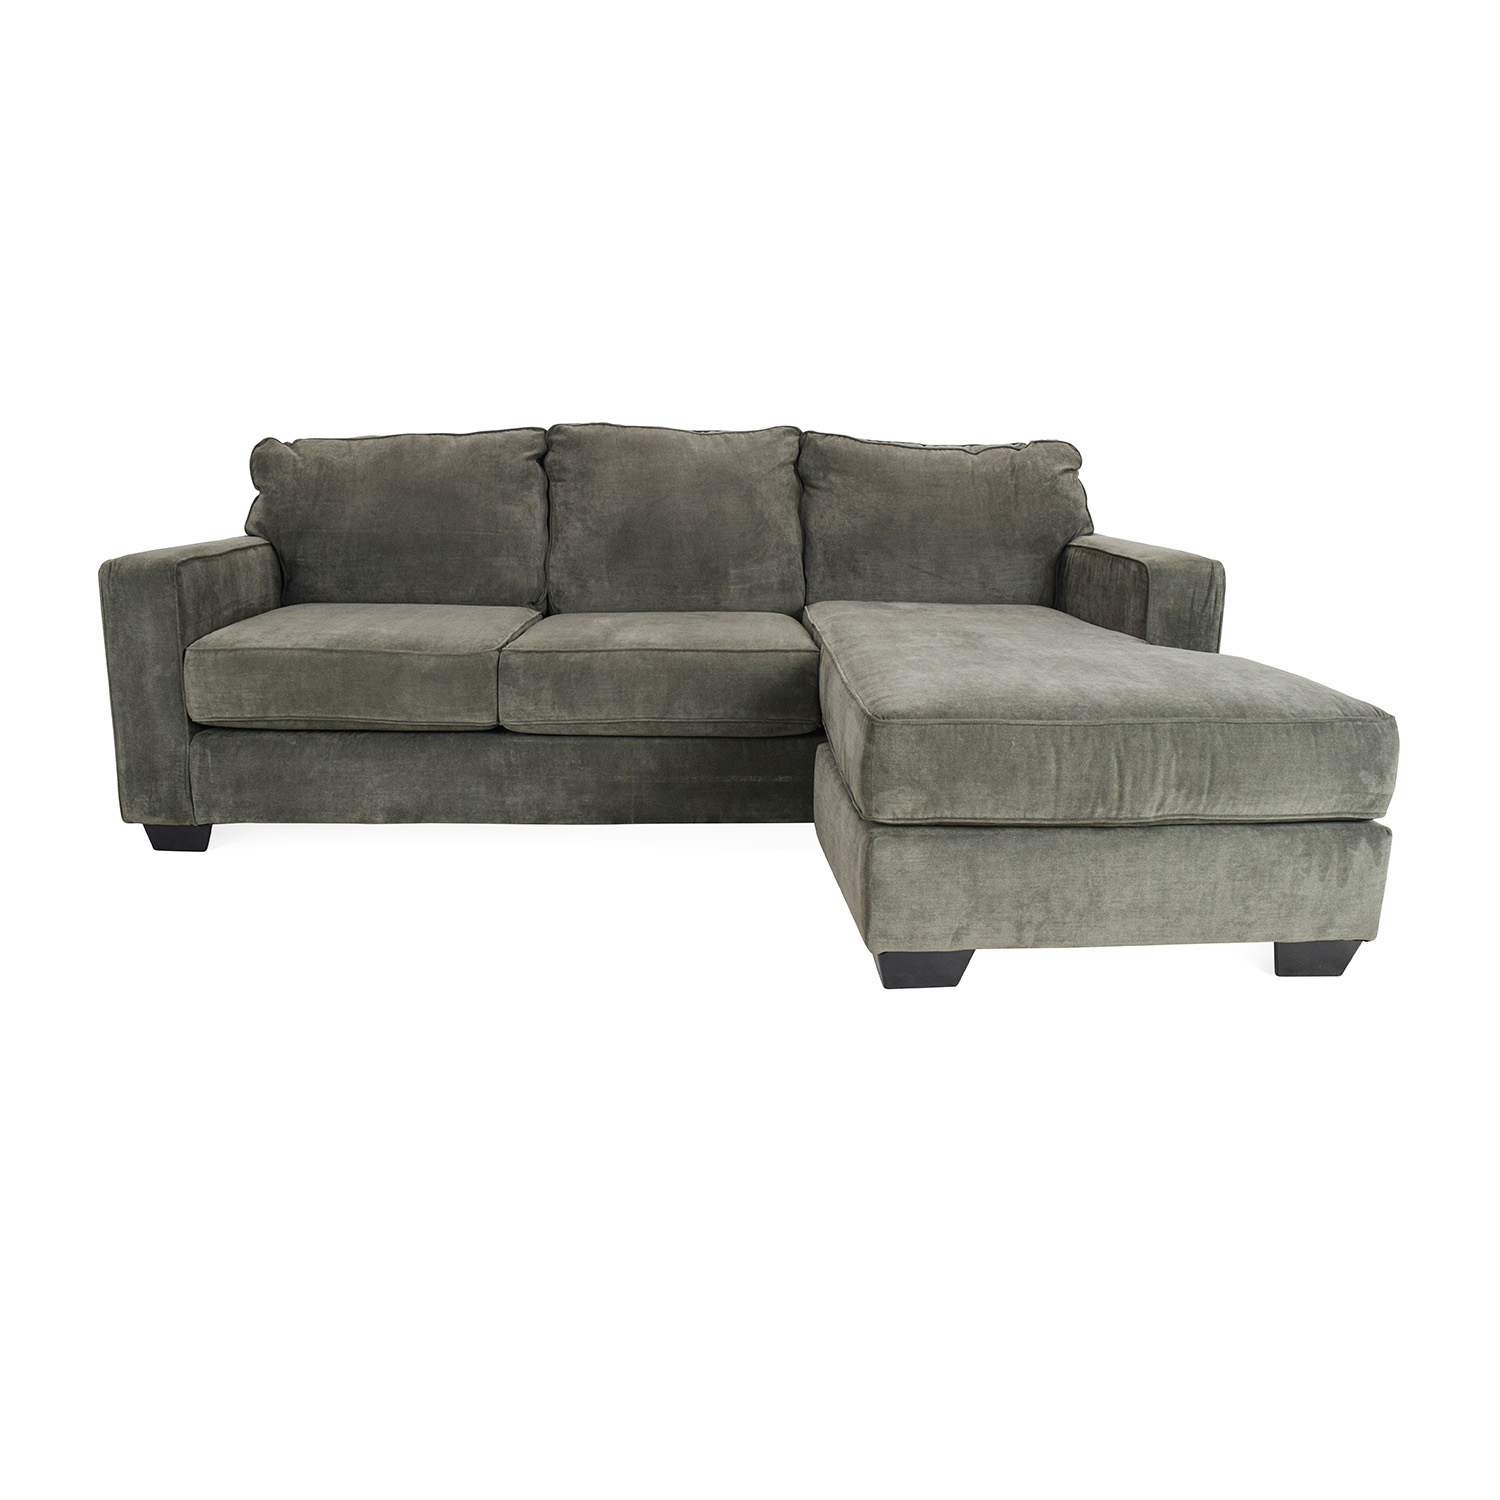 Jennifer convertibles sleeper sofa sectional Sleeper sofa sectional